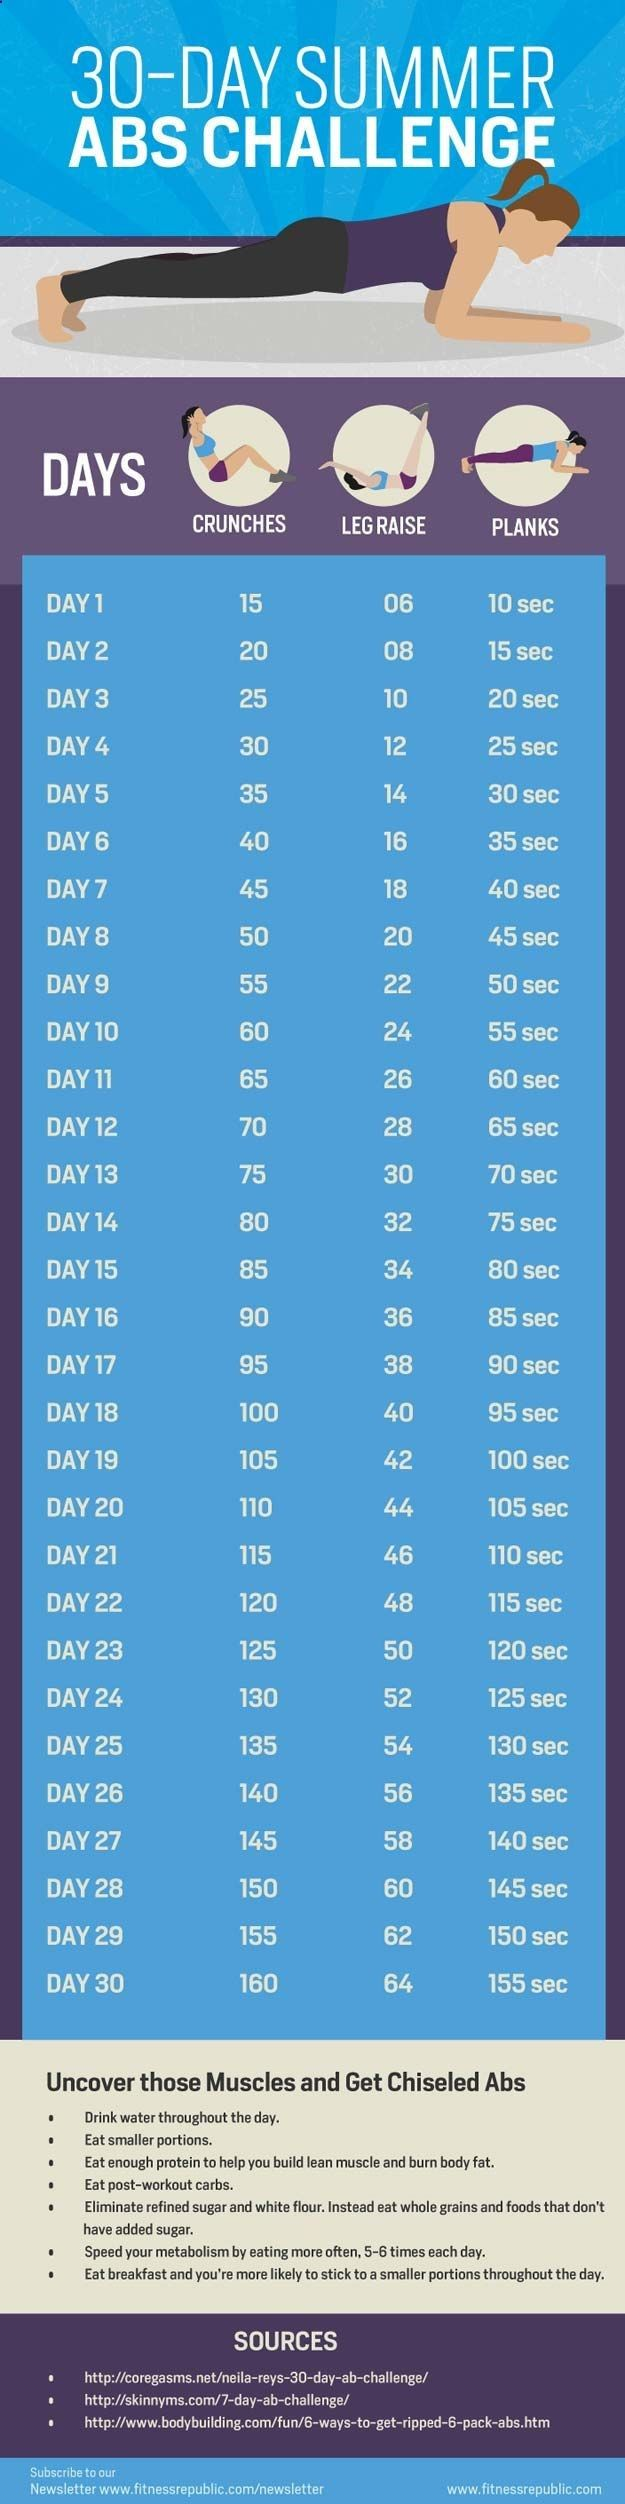 Belly Fat Burner Workout - Best Exercises for Abs - 30-Day Summer Abs Challenge - Best Ab Exercises And Ab Workouts For A Flat Stomach, Increased Health Fitness, And Weightless. Ab Exercises For Women, For Men, And For Kids. Great With A Diet To Help With Losing Weight From The Lower Belly, Getting Rid Of That Muffin Top, And Increasing Muscle To Refine Your Stomach And Hip Shape. Fat Burners And Calorie Burners For A Flat Belly, Six Pack Abs, And Summer Beach Body. Crunches And More -...